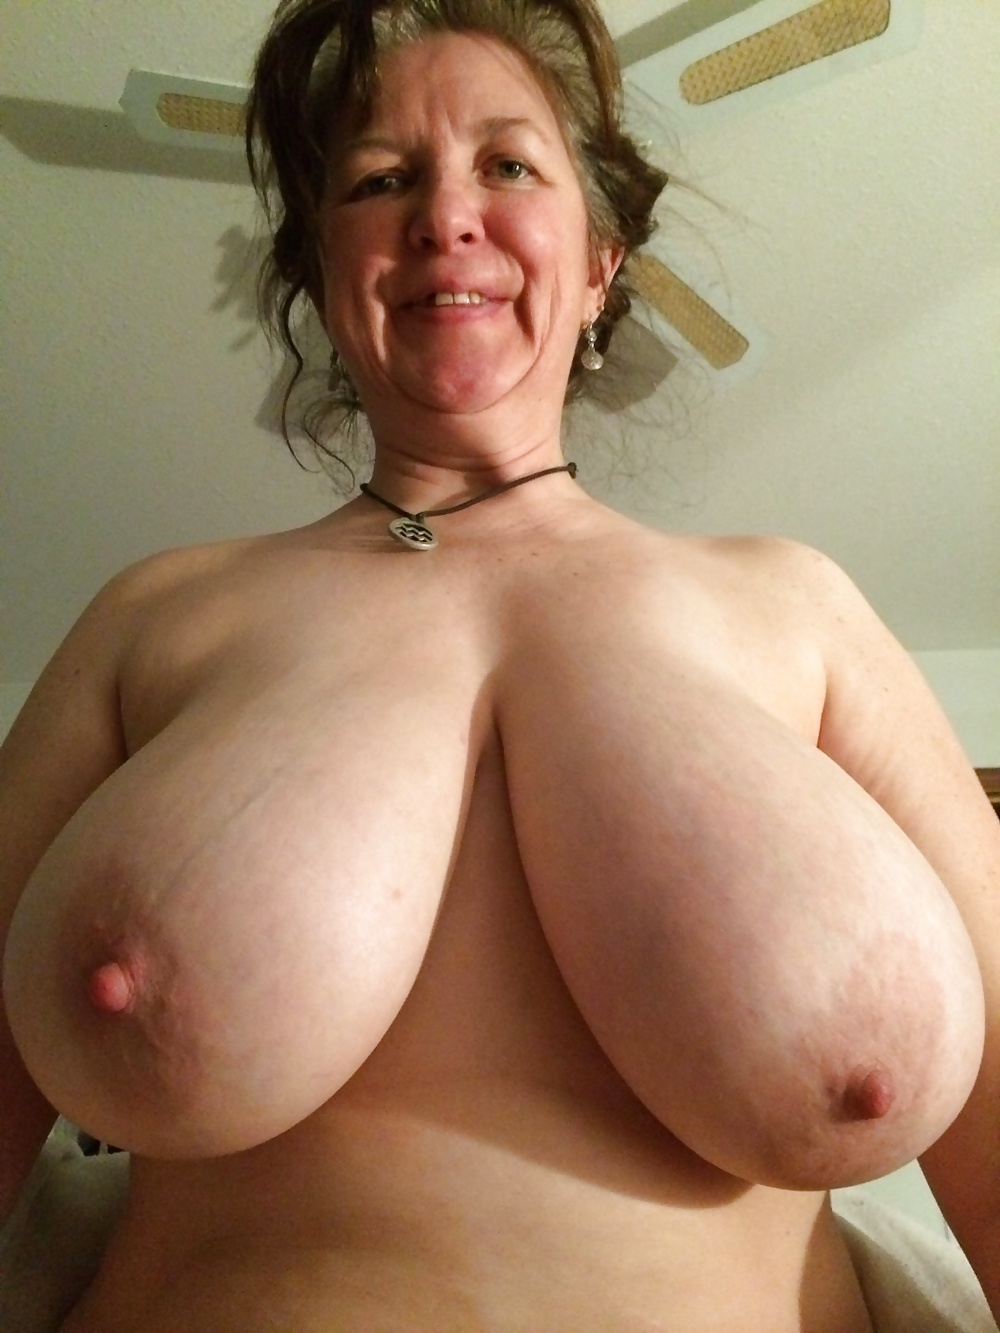 Boobs grandmother with big breast nude online forced